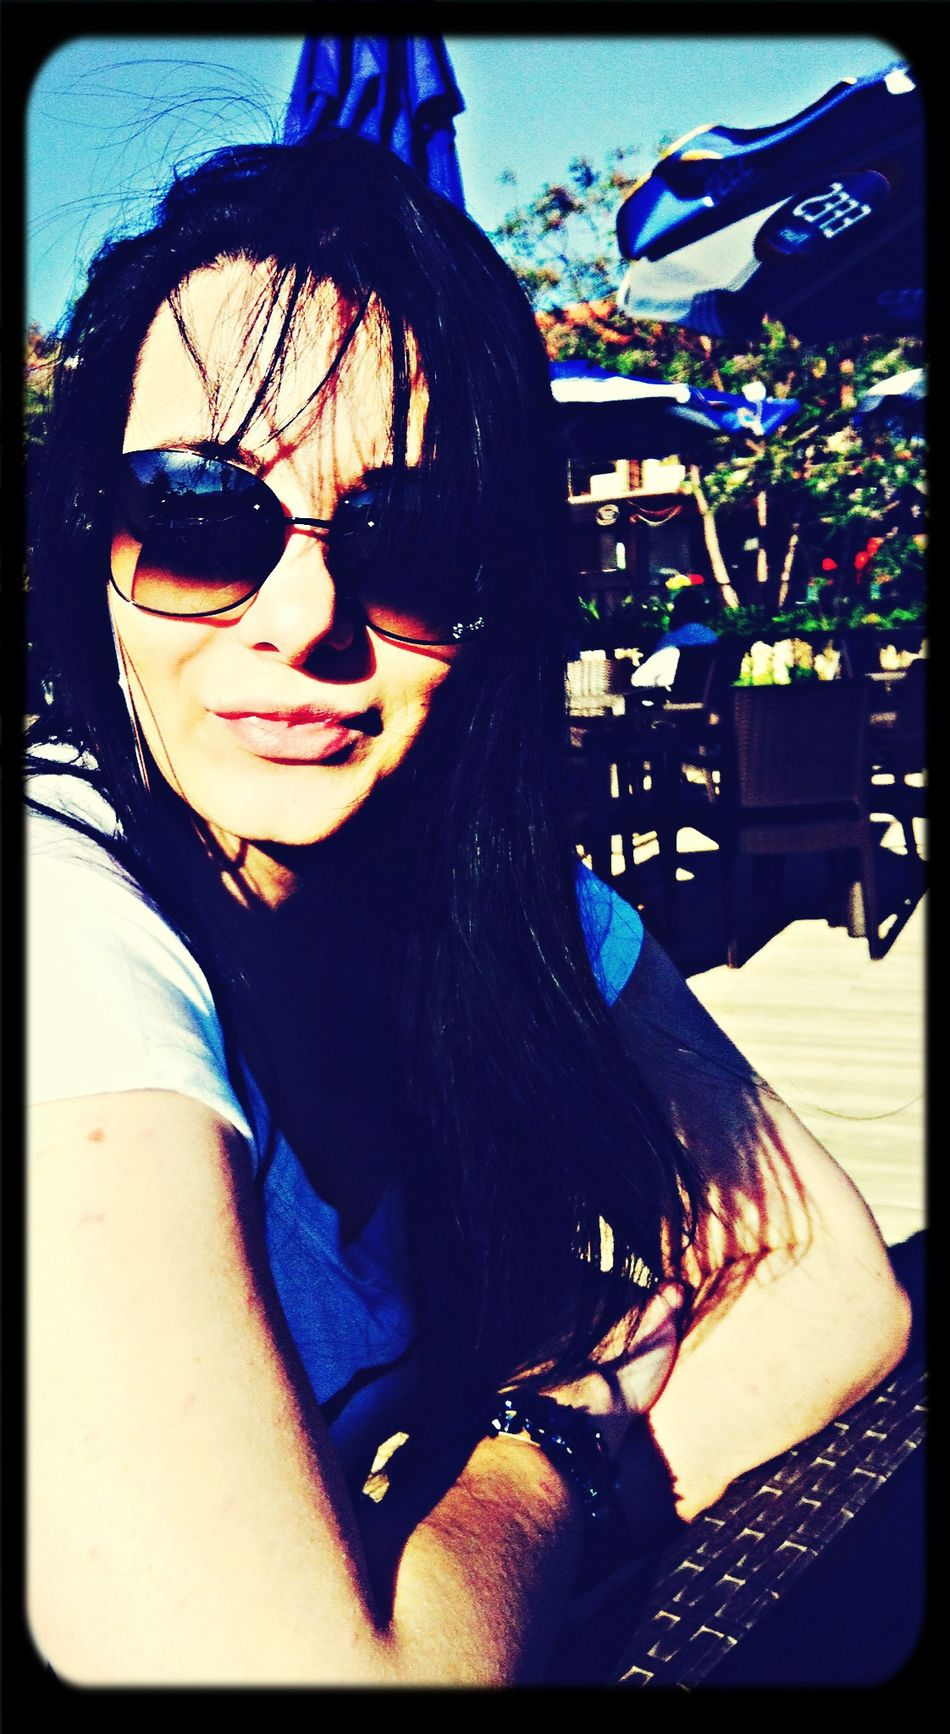 Check This Out Sunlight Sunglasses Smile